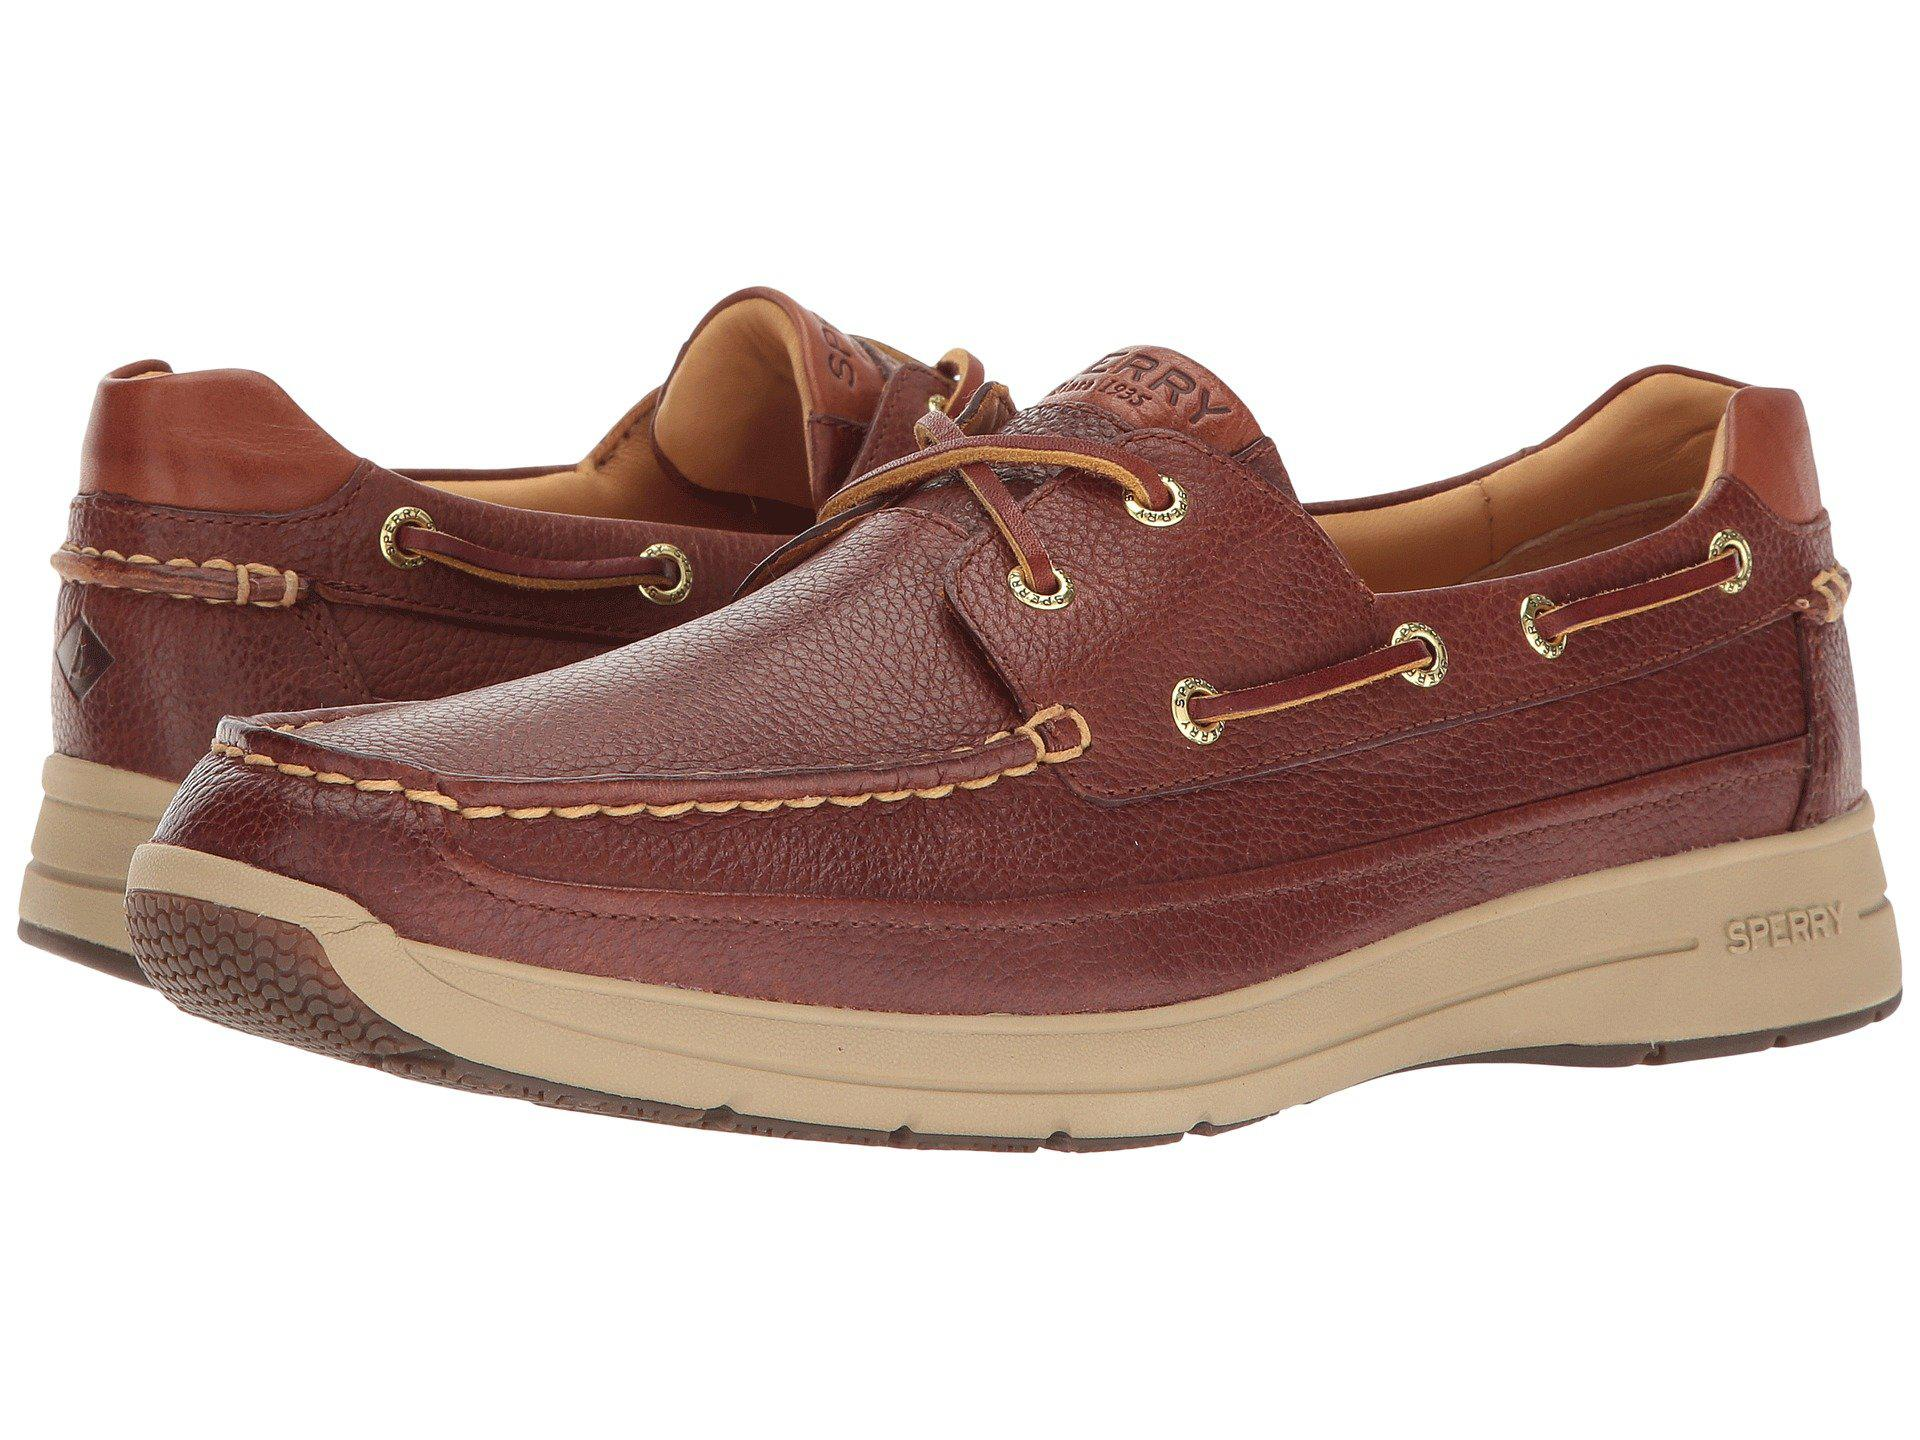 Lyst - Sperry Top-Sider Gold Ultralite 2-eye W  Asv in Brown for Men 44e3fd8cbc2